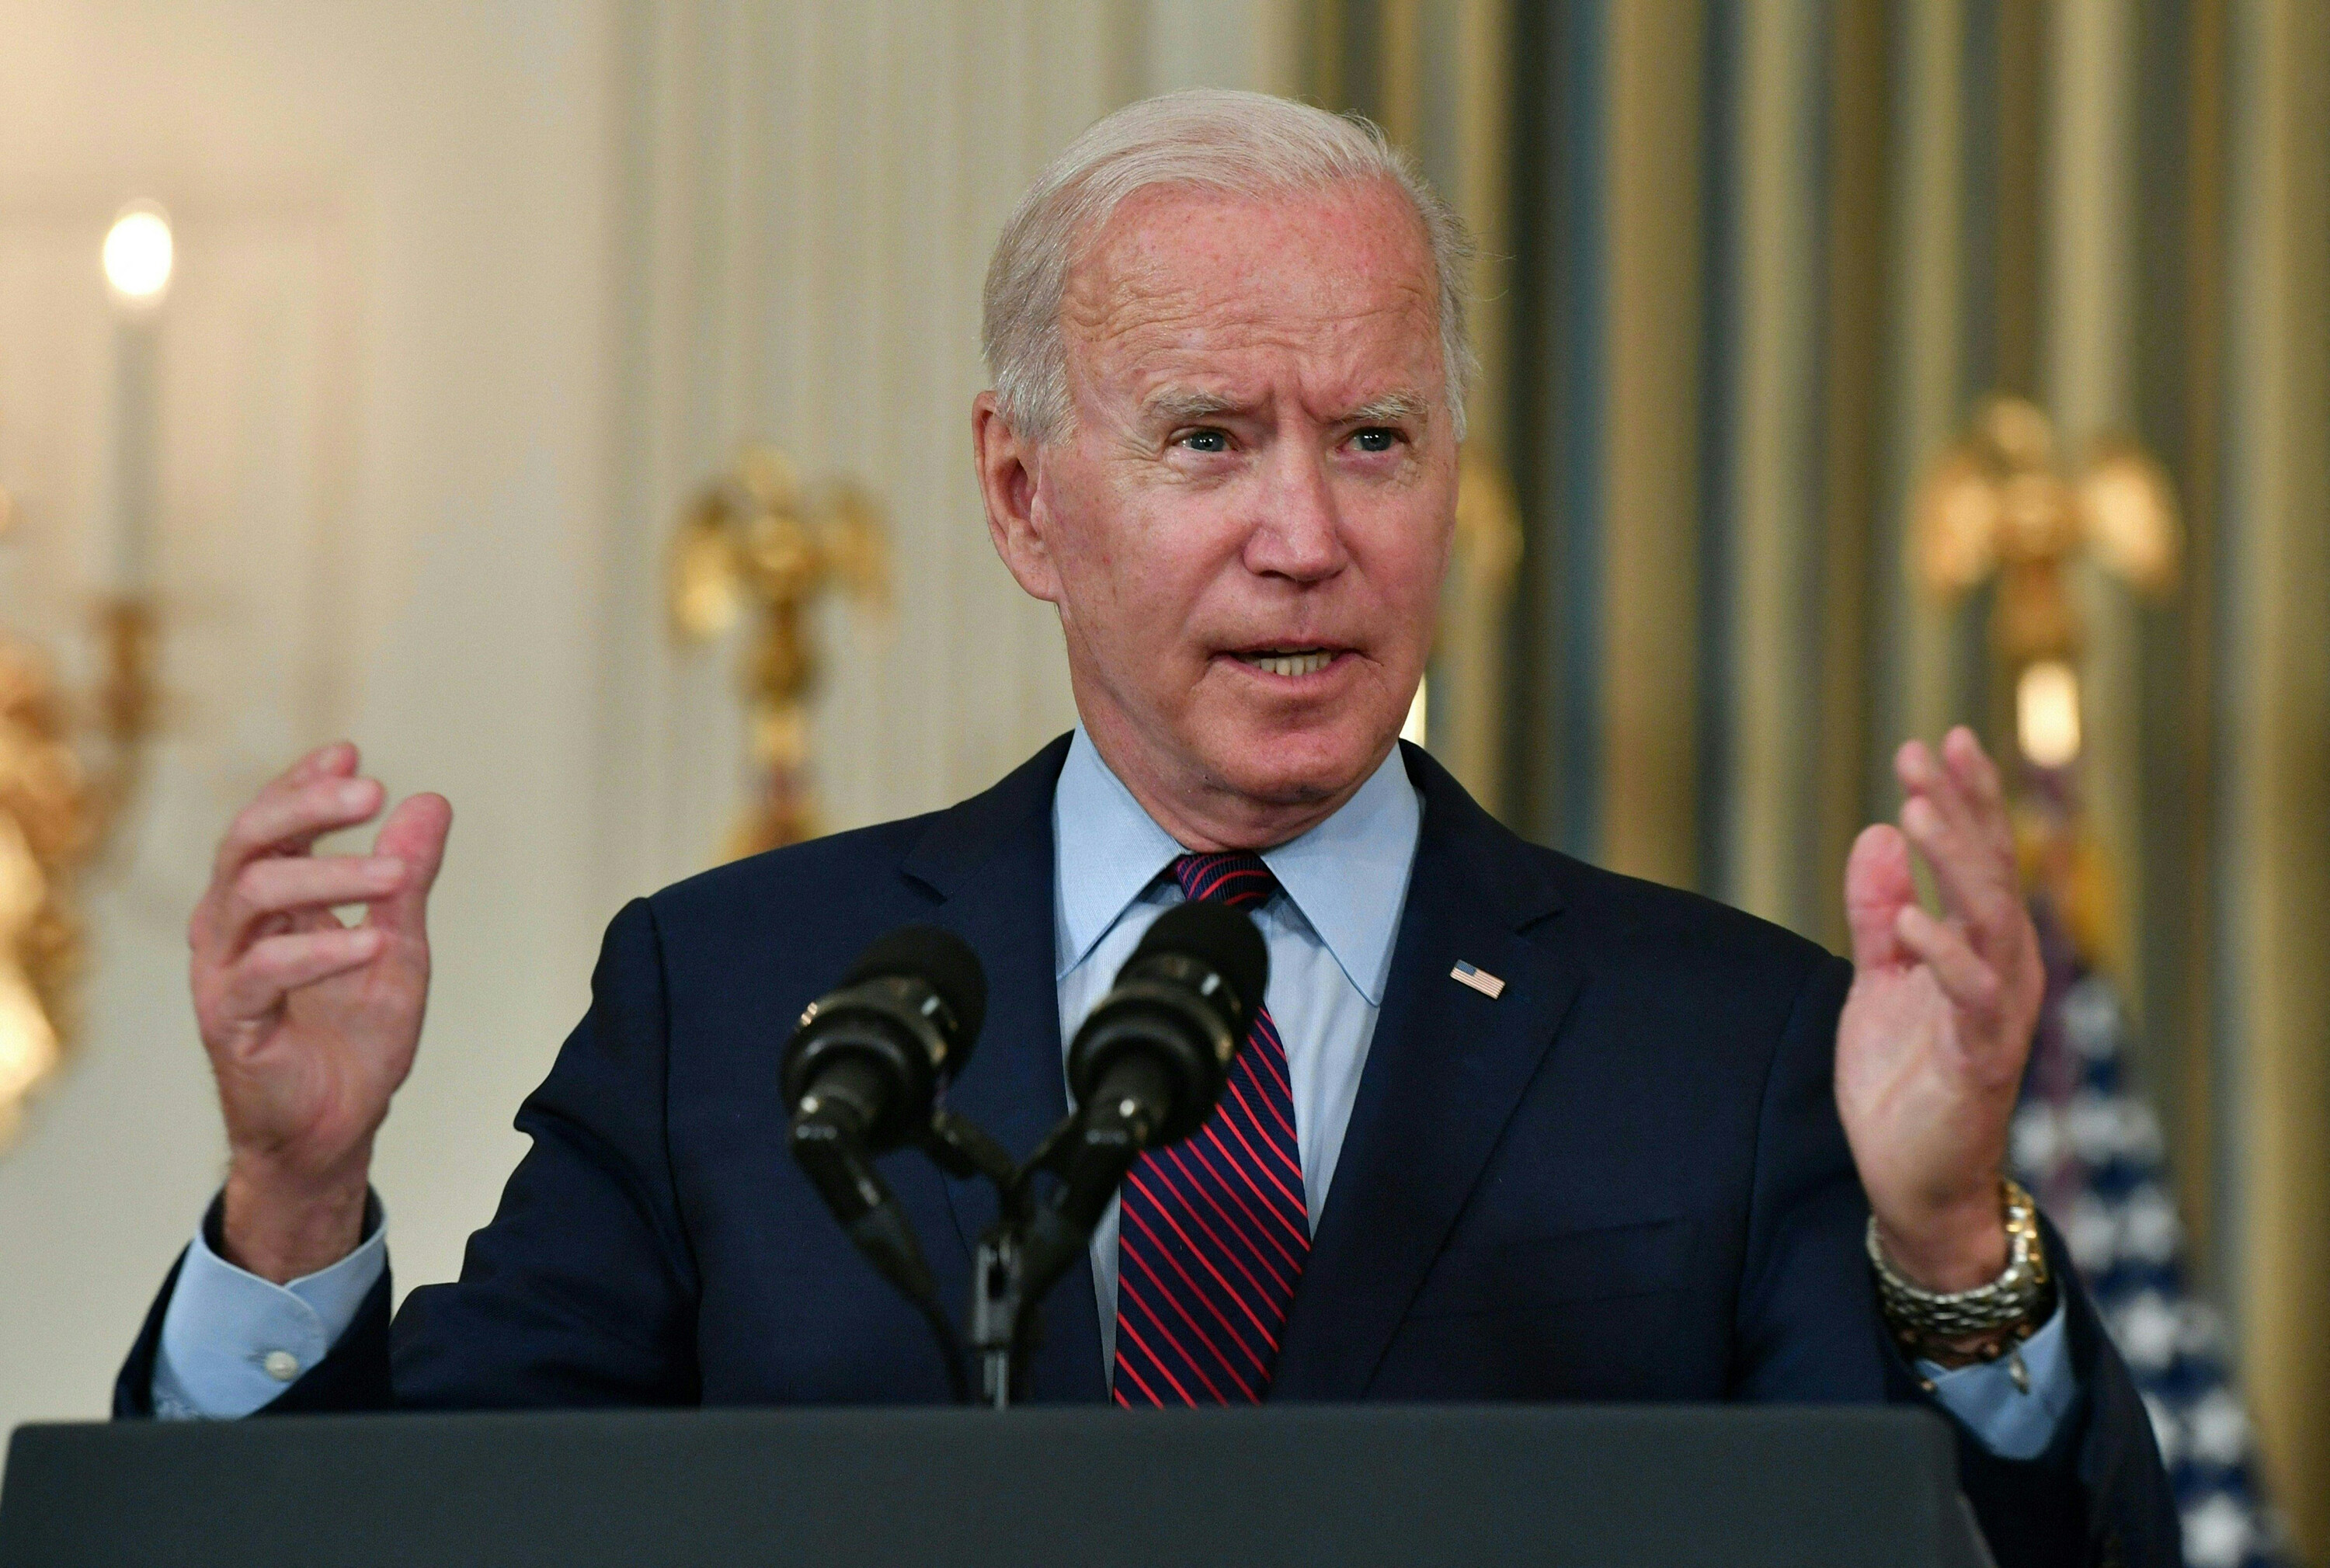 Biden looks to repair the frayed US relationship with Mexico